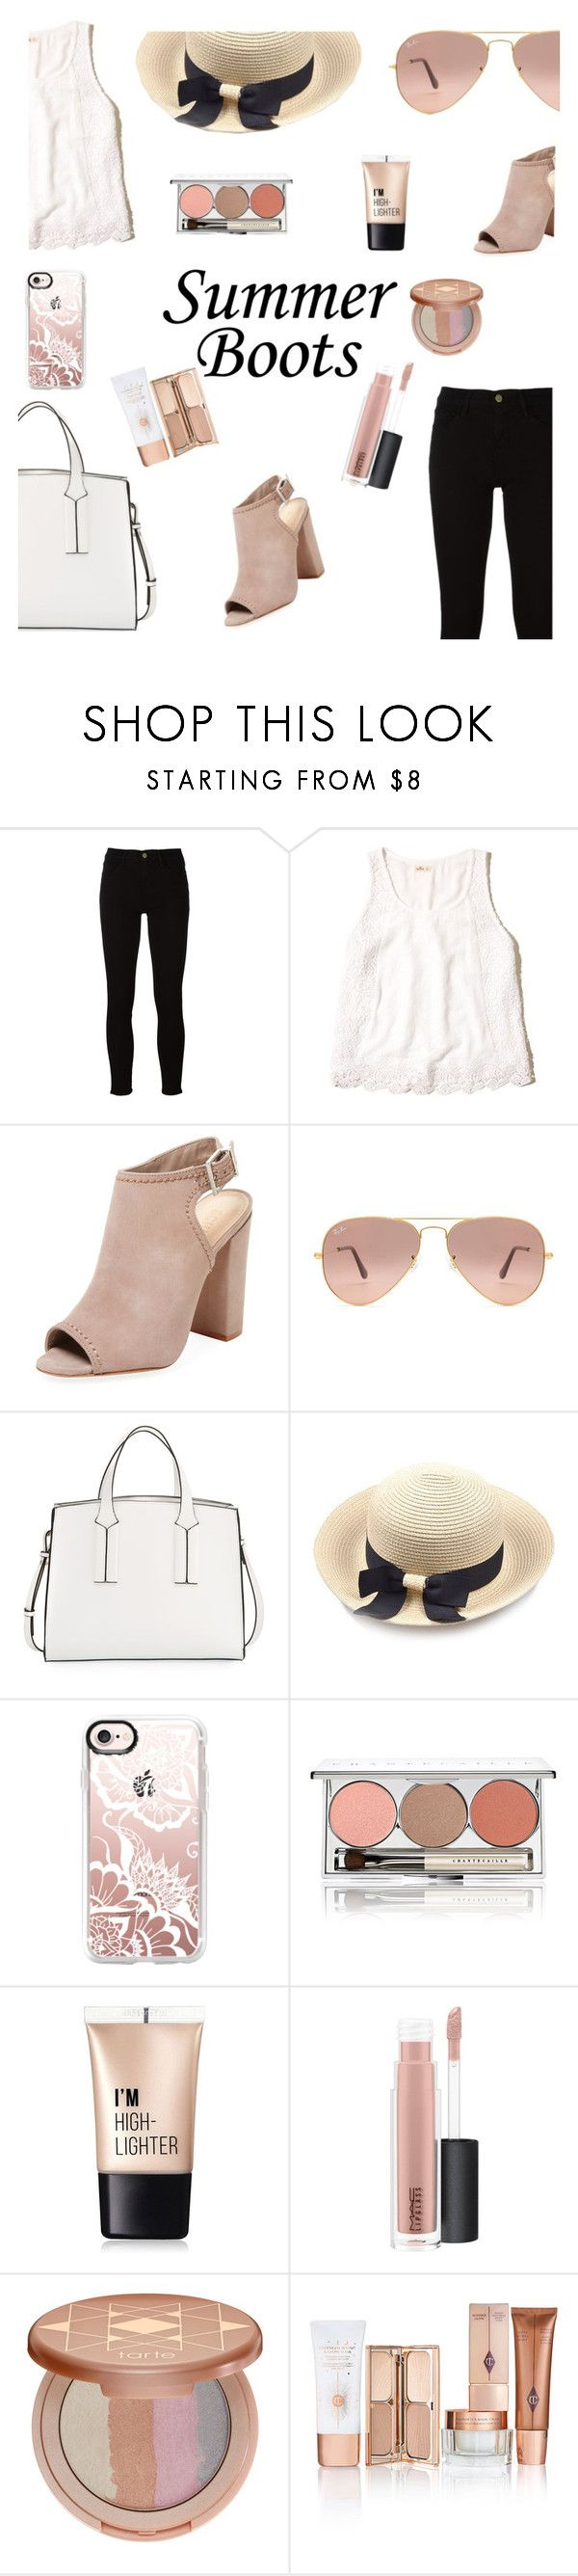 """""""summer boots"""" by a-hidden-secret ❤ liked on Polyvore featuring Frame, Hollister Co., Schutz, Ray-Ban, French Connection, Casetify, Chantecaille, Charlotte Russe, MAC Cosmetics and tarte"""